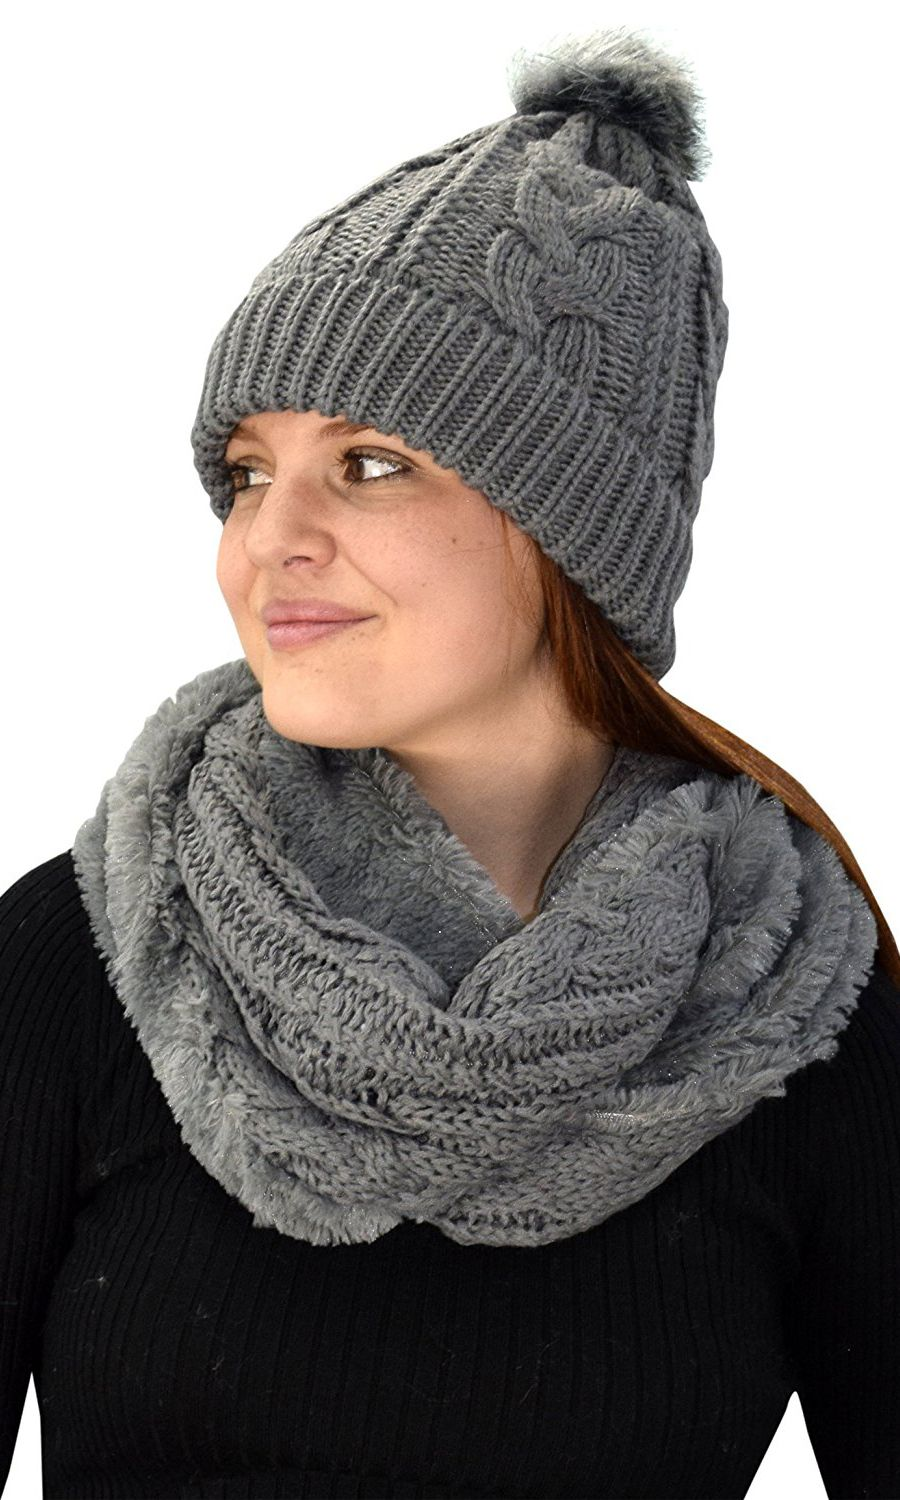 10af6aba476 ... Hat Plush Infinity Loop Scarf 2 Pack. Find this Pin and more on Online  Sale by alyssabrianna30. Sale Price     14.95.....Grey 97 Cable Knit Weave  Beanie